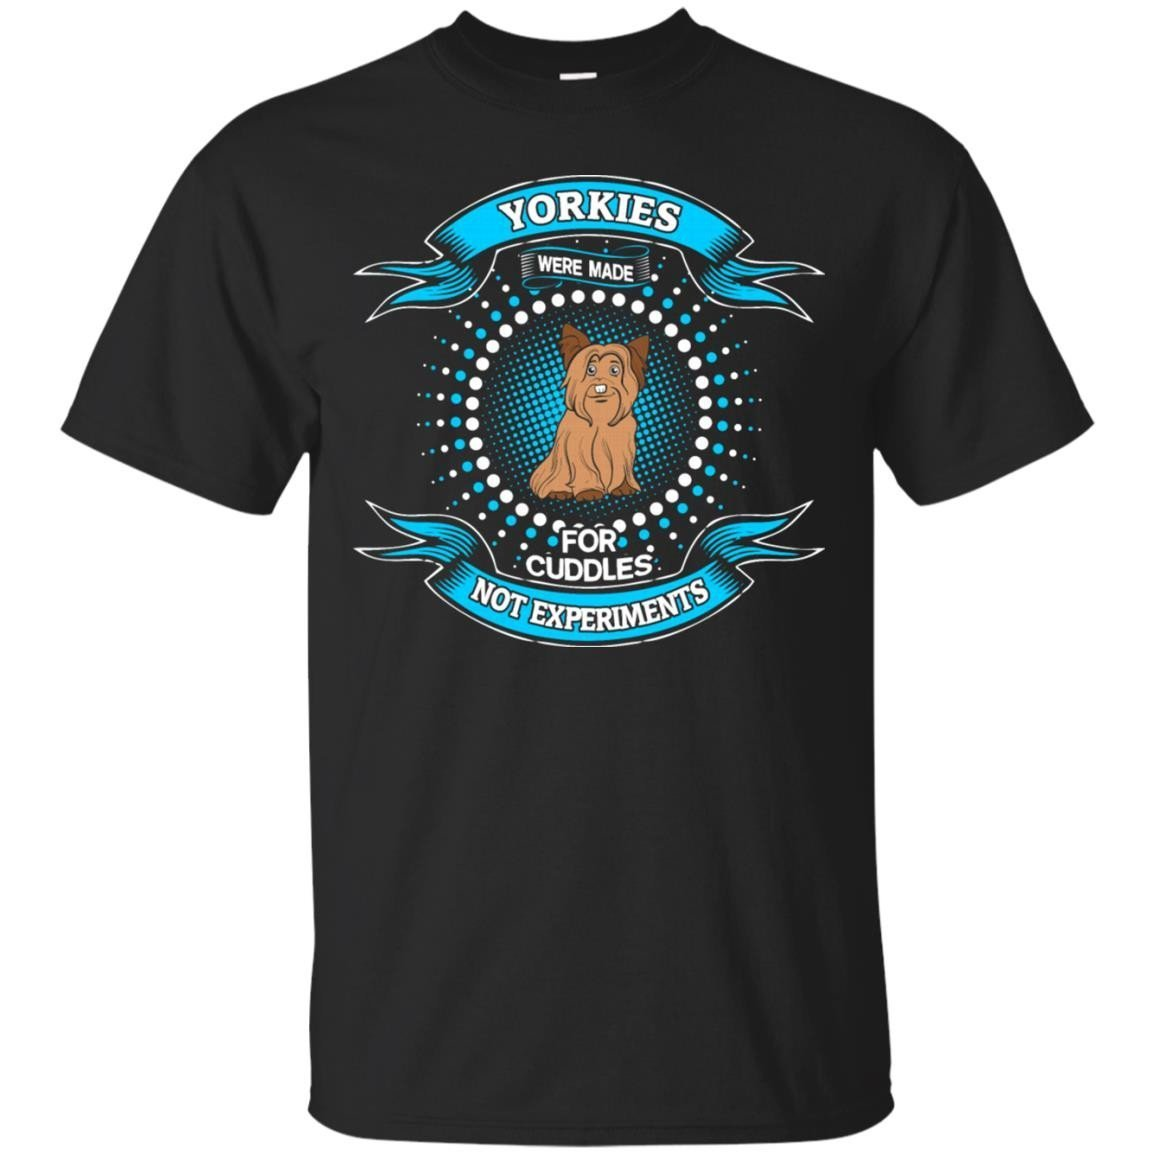 Yorkie Dogs For Cuddles Not Experiments T-Shirt Men